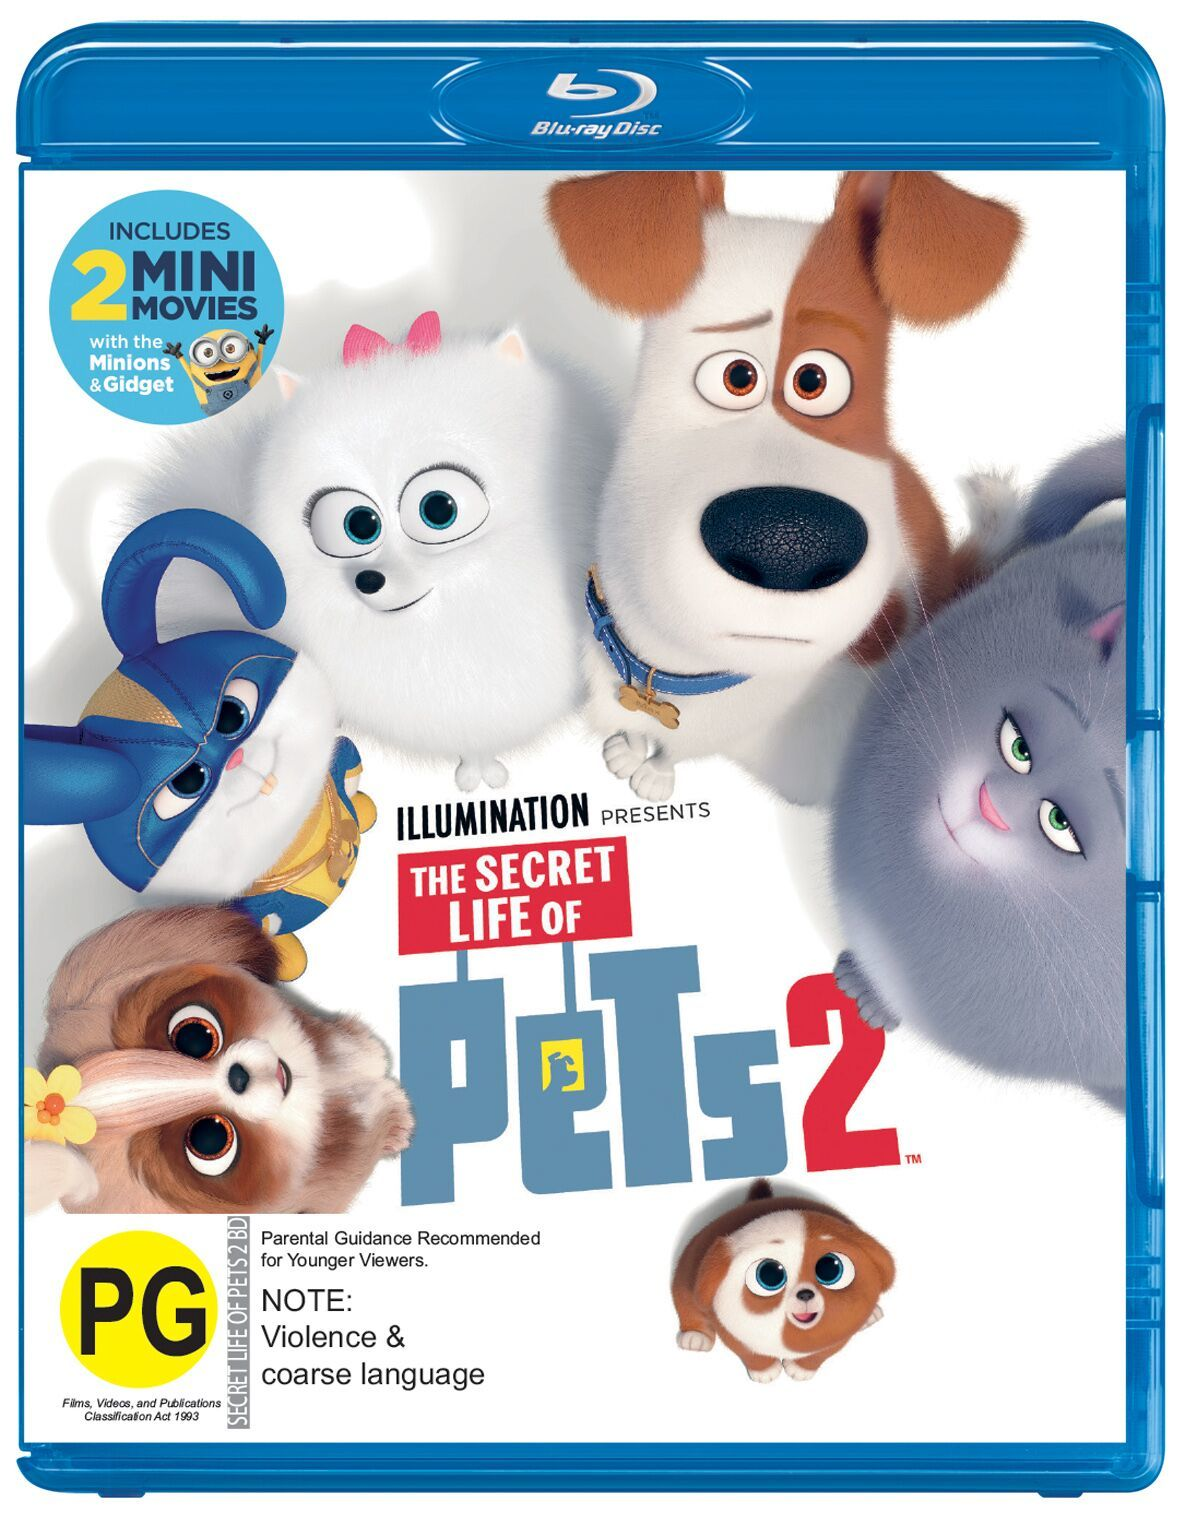 The Secret Life of Pets 2 on Blu-ray image